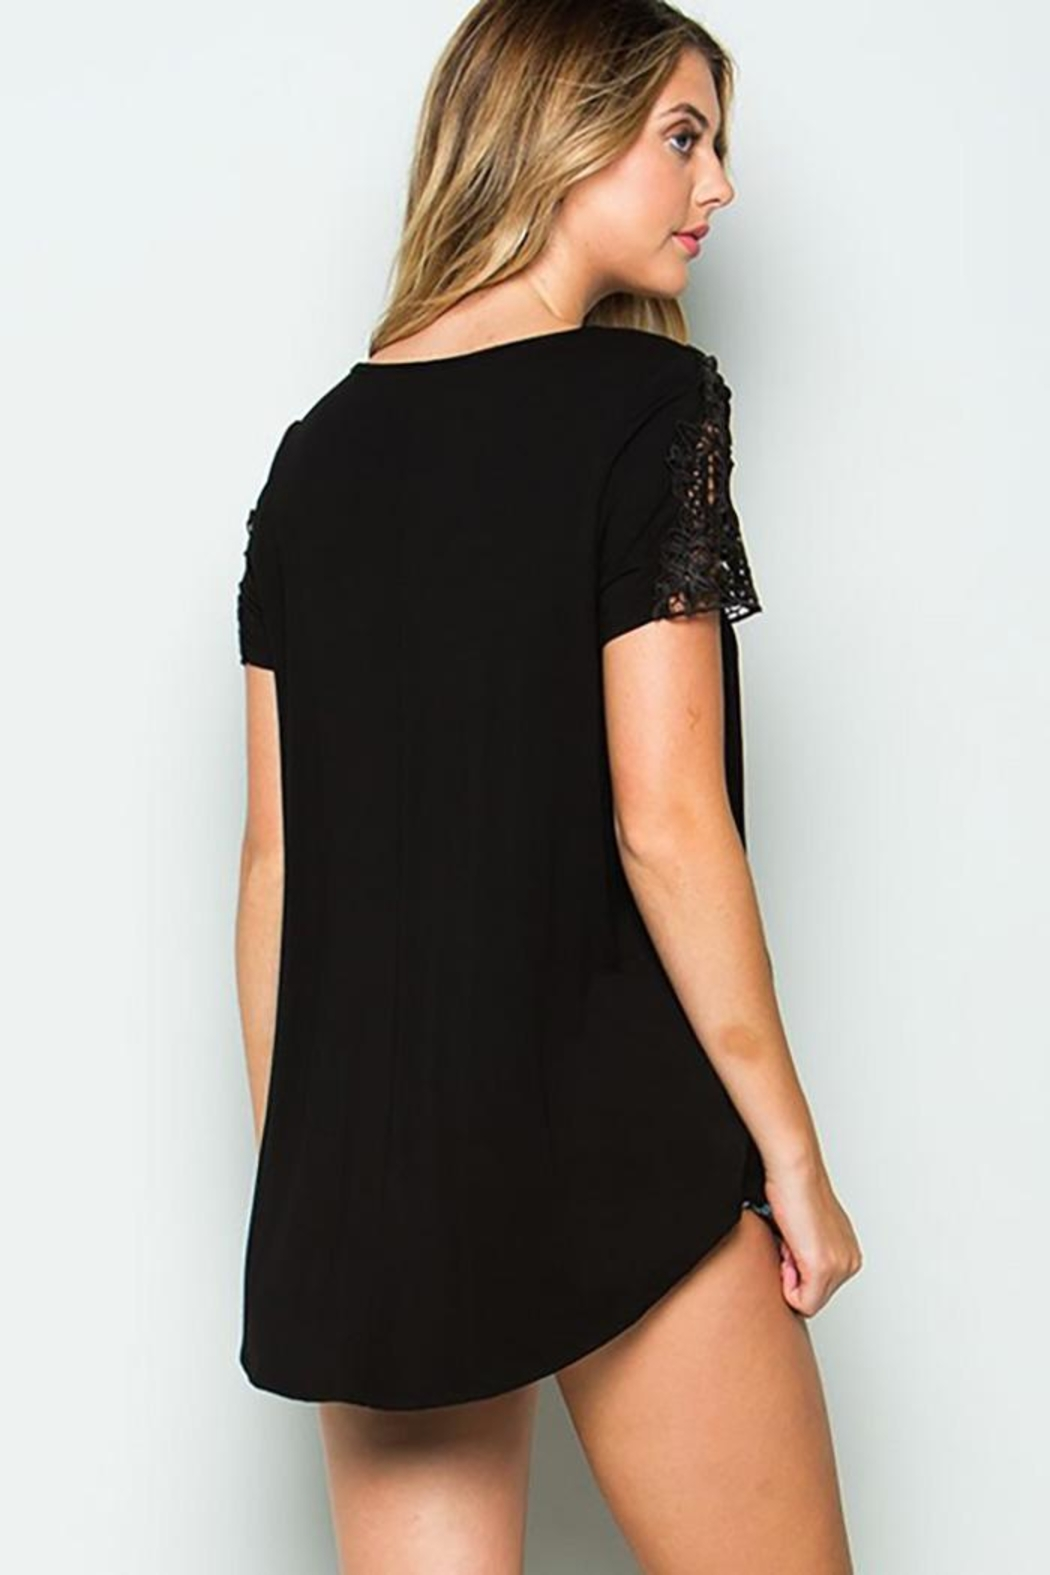 CY Fashion Crochet Lace Detail Top With Knob - Front Full Image